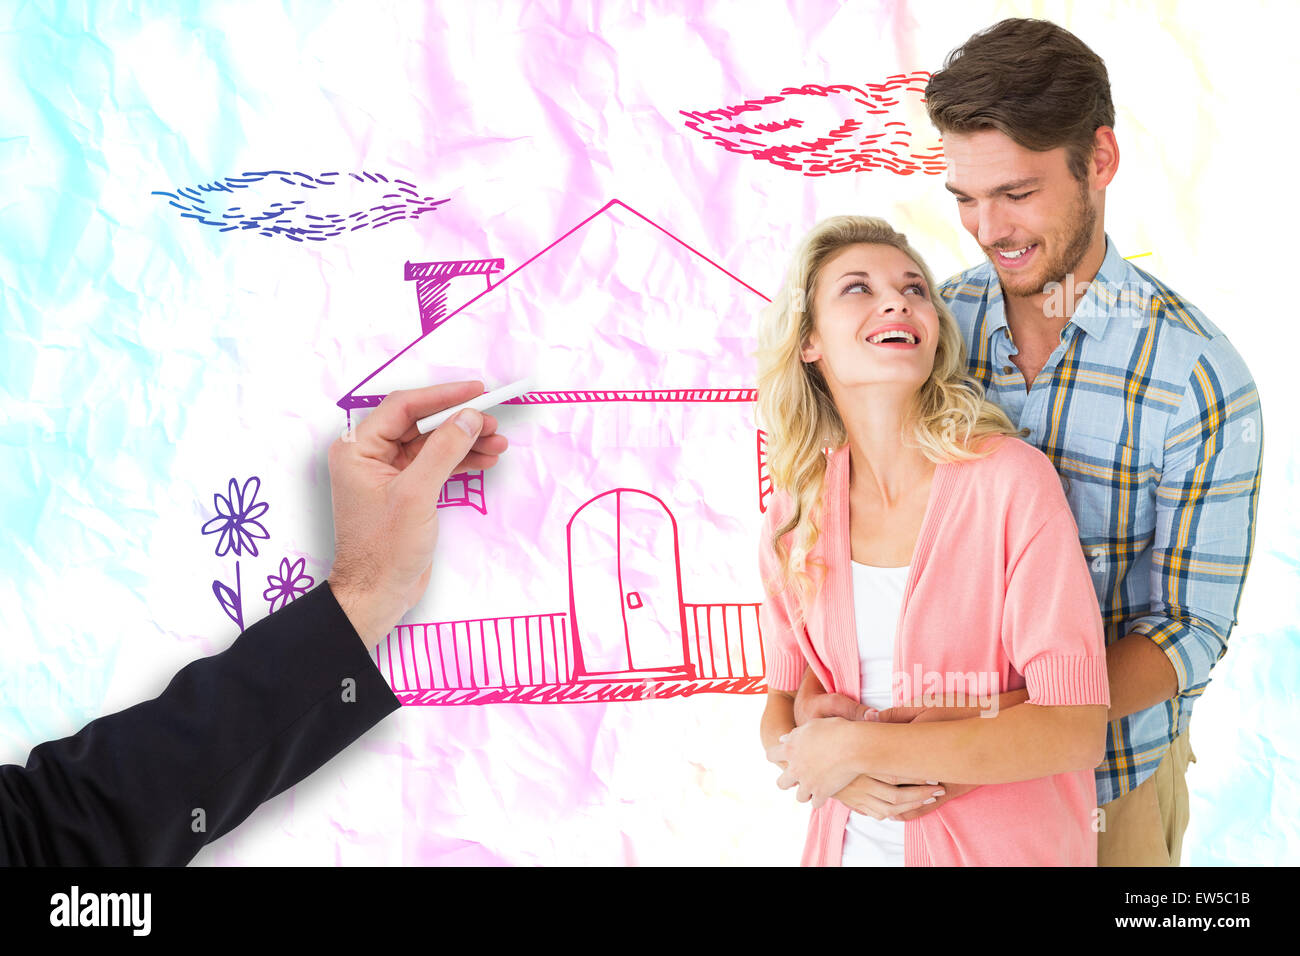 Composite image of attractive young couple embracing and smiling - Stock Image